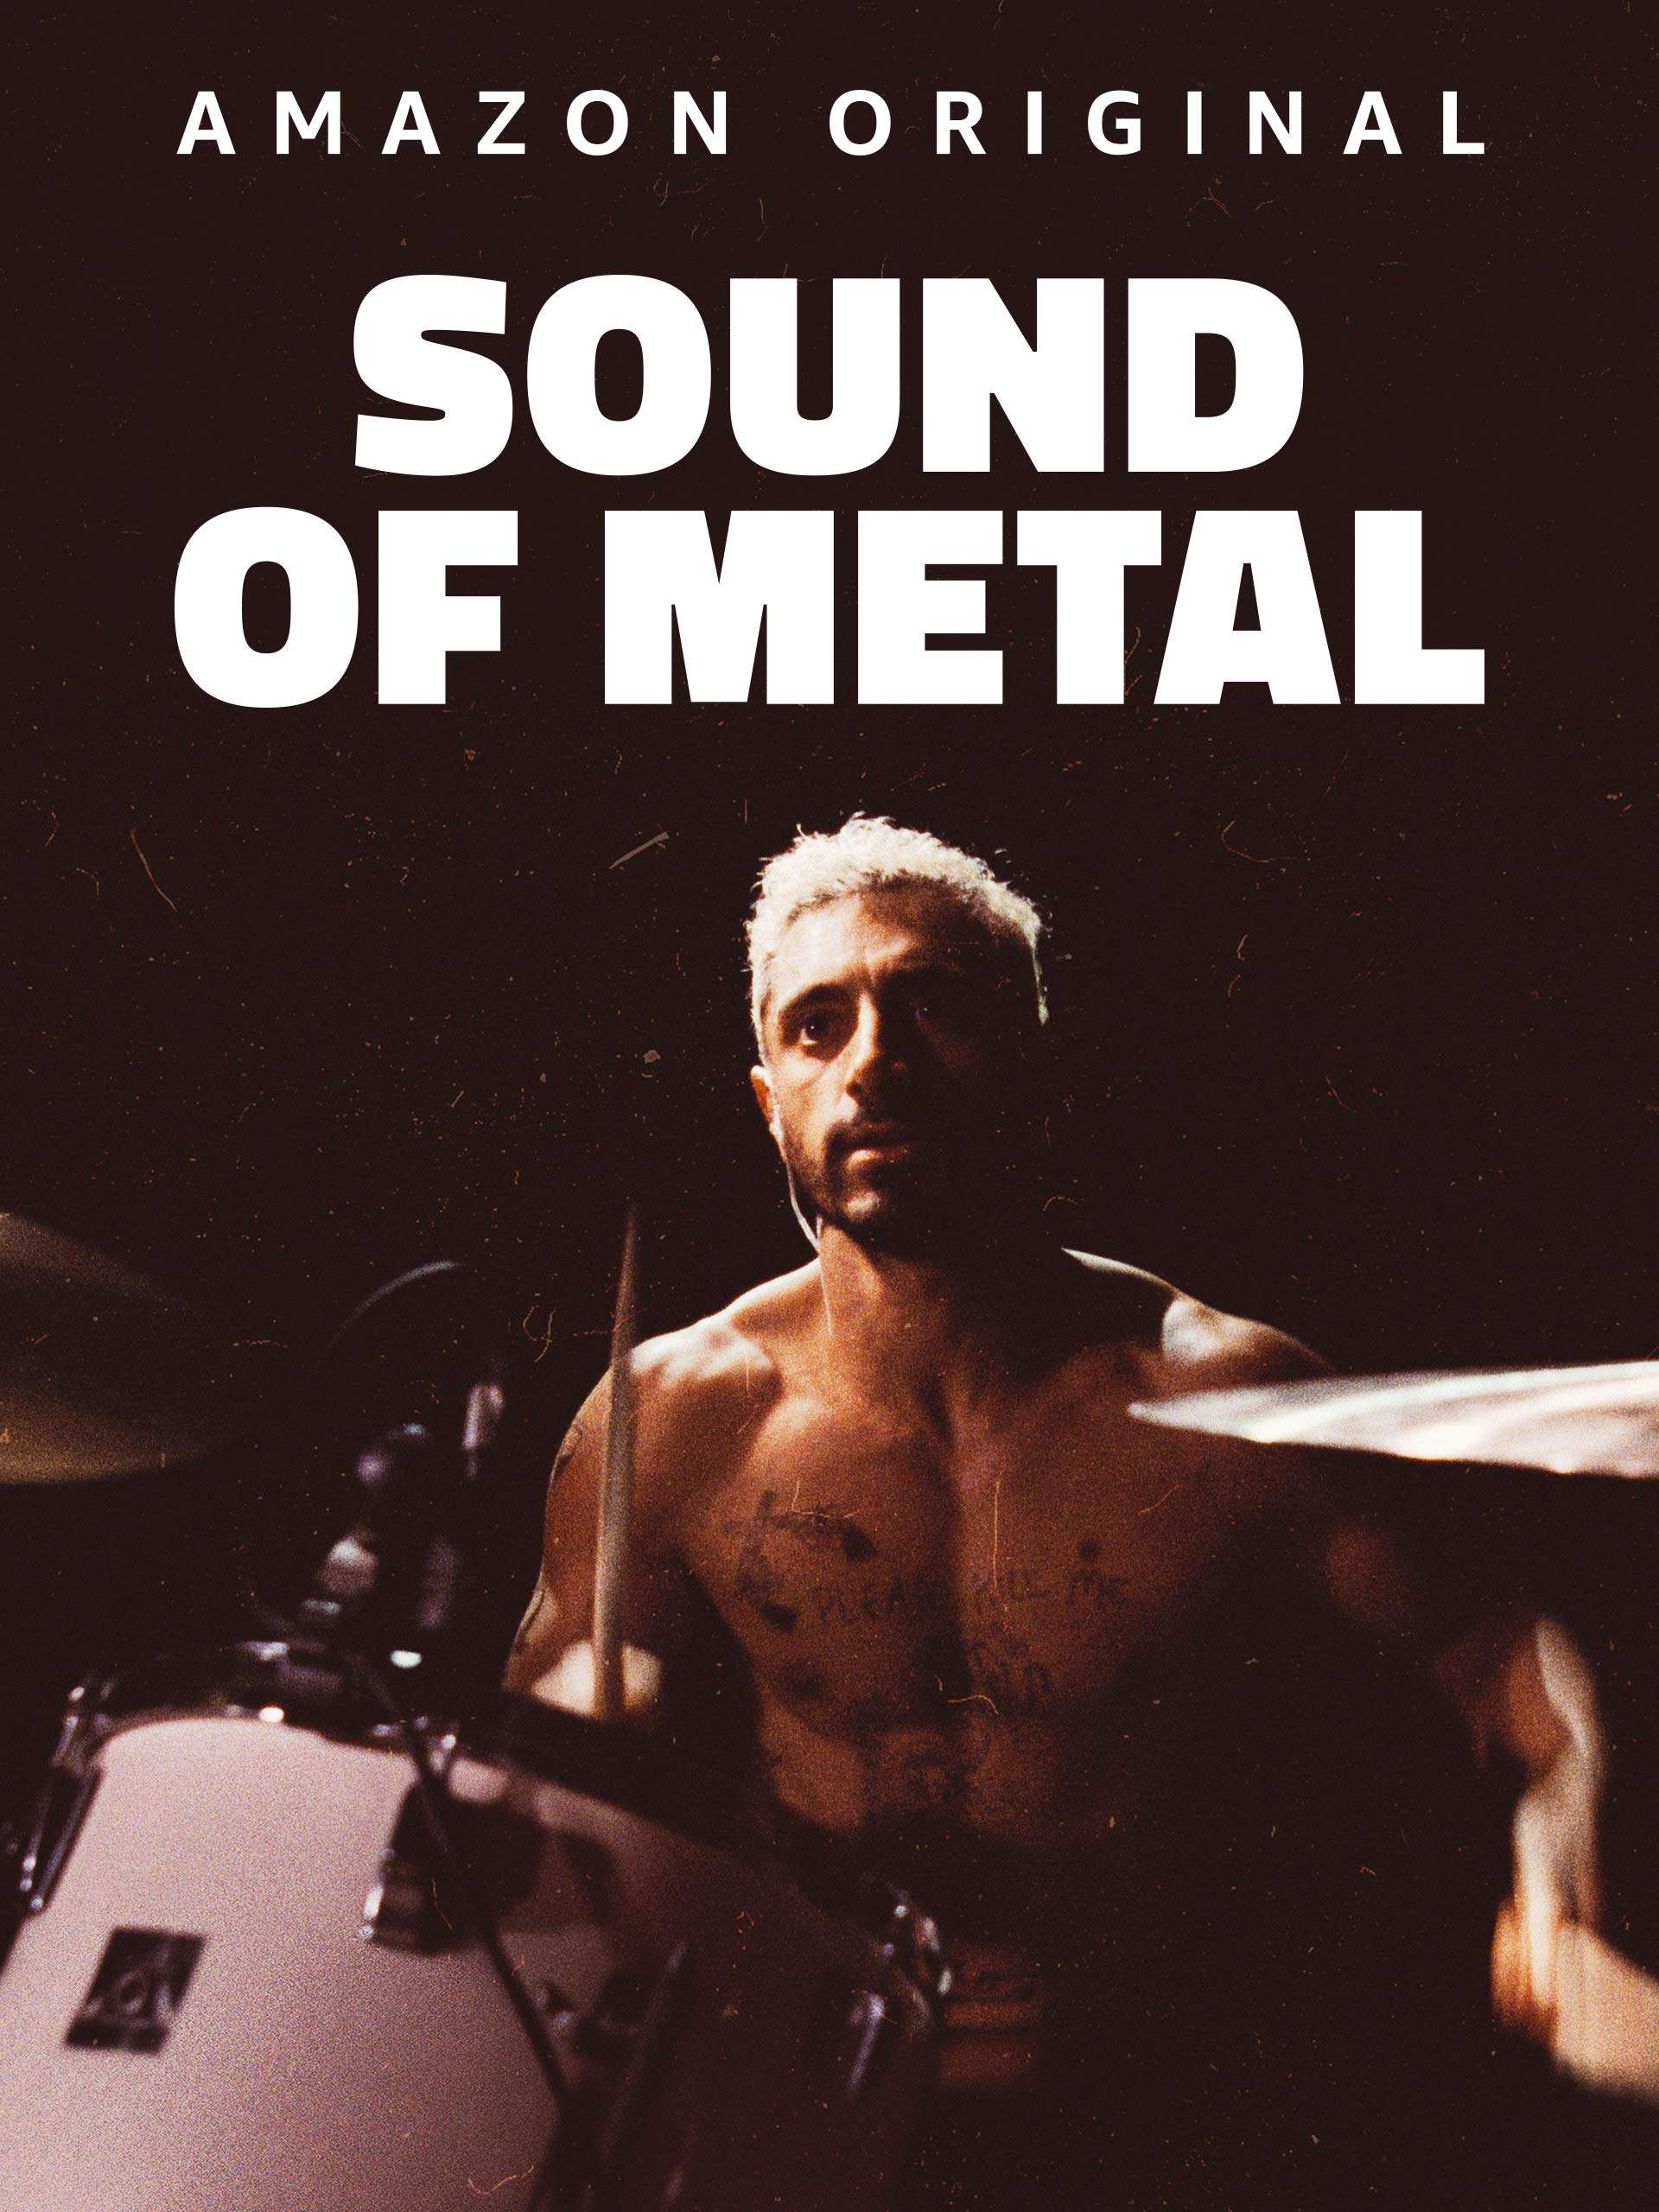 Sound-of-metal.jpg